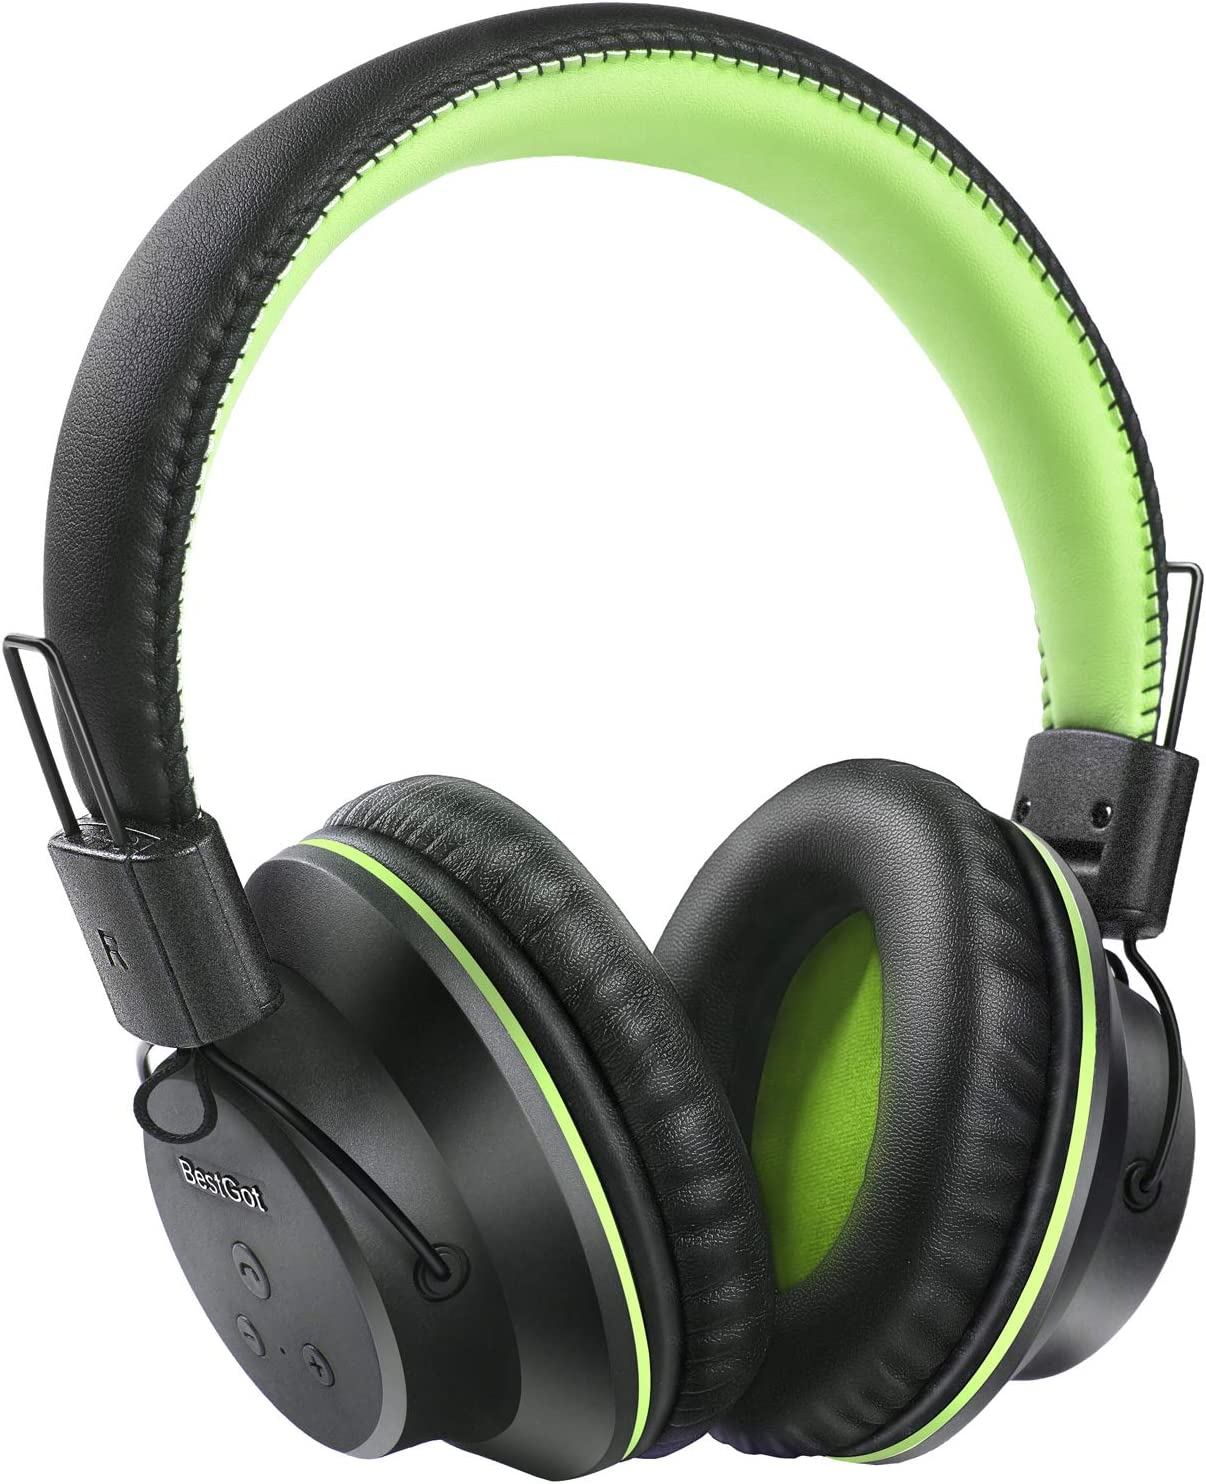 Bluetooth Over Ear Headphones, BestGot S1 Wireless Headset Foldable 20Hrs Playtime Over-Ear Wireless Headphones with Mic for PC/Cell Phone (Black/Green)